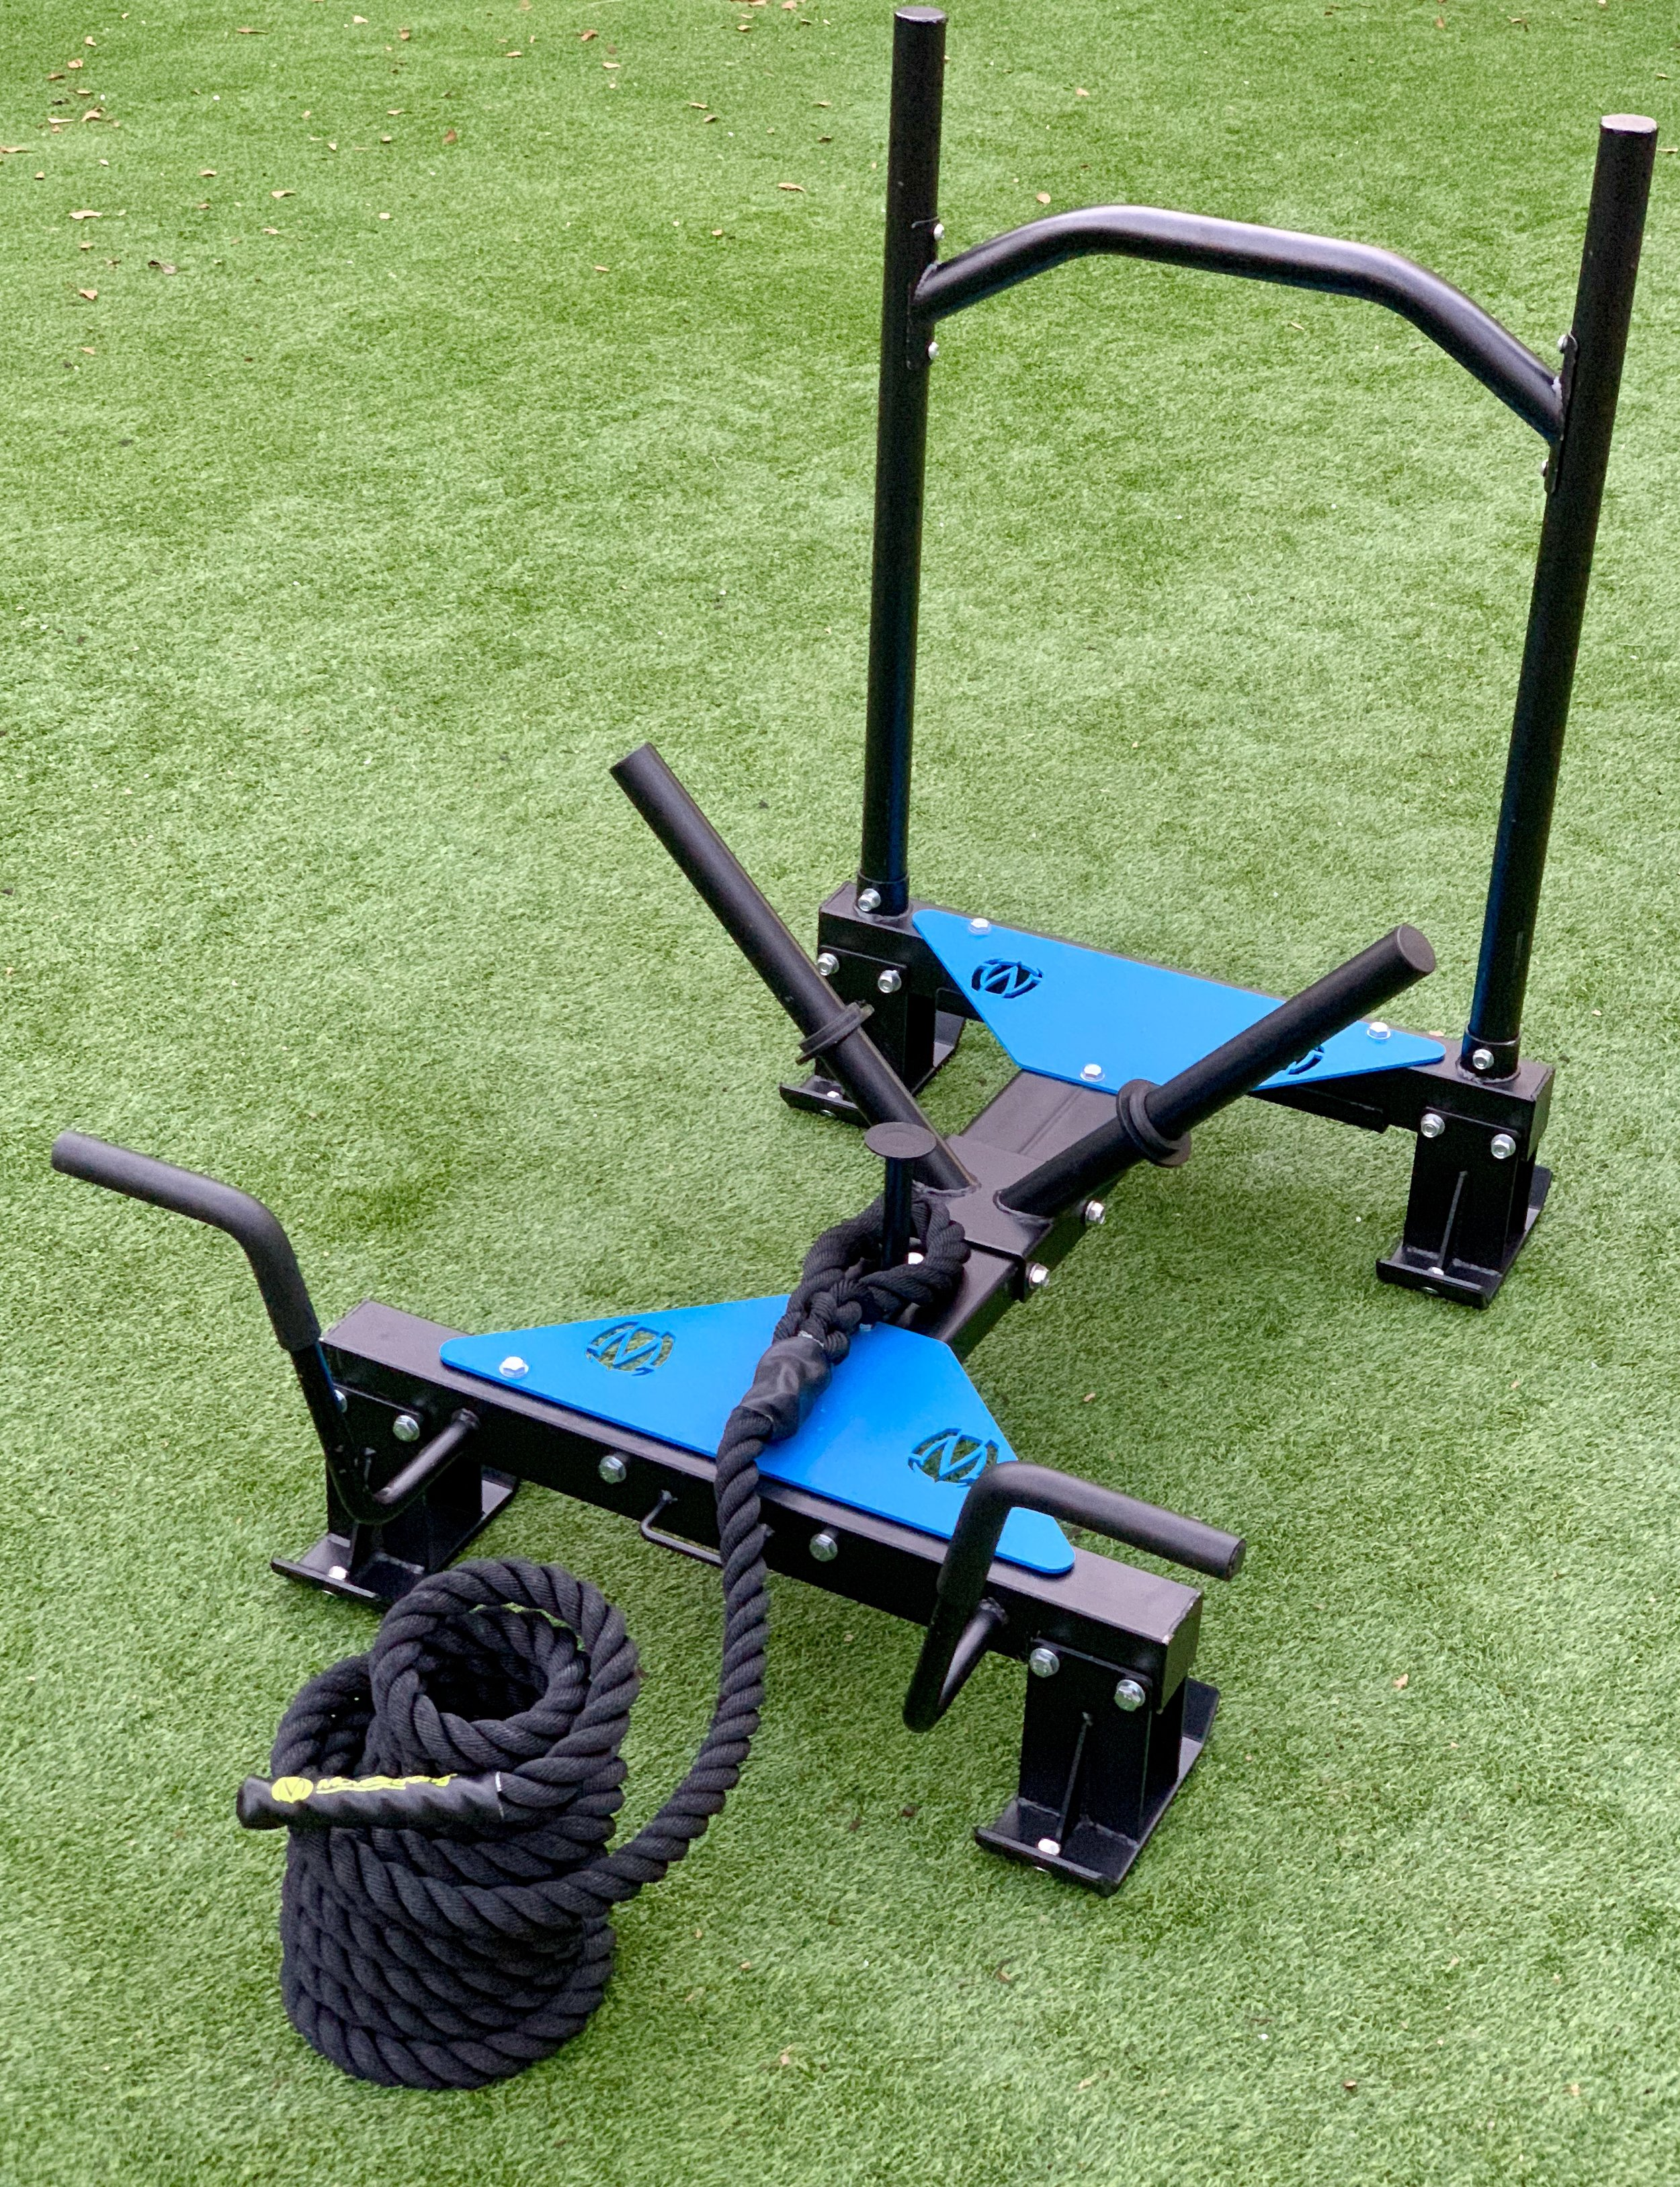 MoveStrong MANTIS Power Sled for functional fitness and conditioning